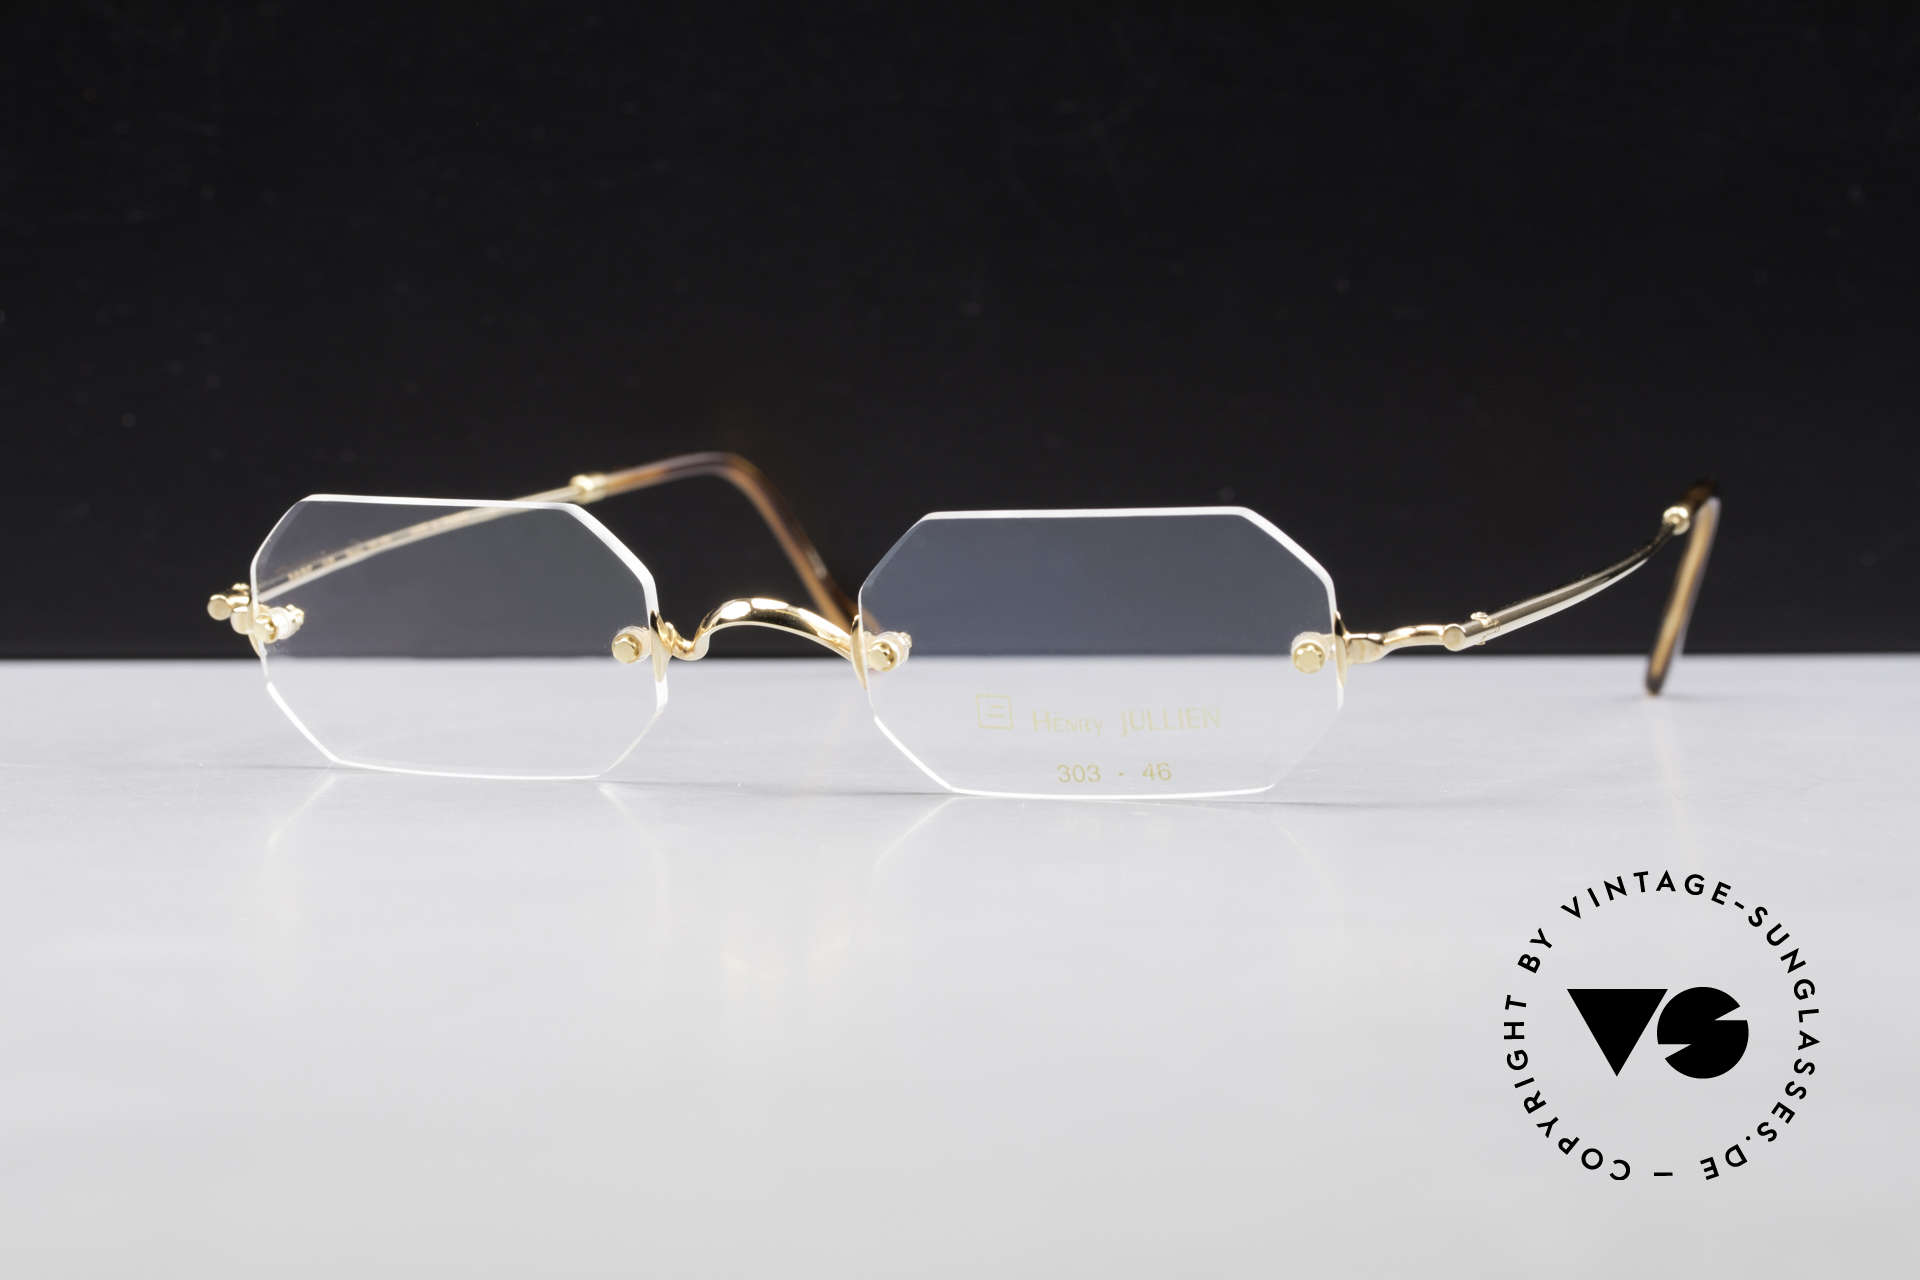 Henry Jullien Paraphe 303 Octagonal Rimless Frame, accordingly top-notch, noble & precious frame finish, Made for Men and Women